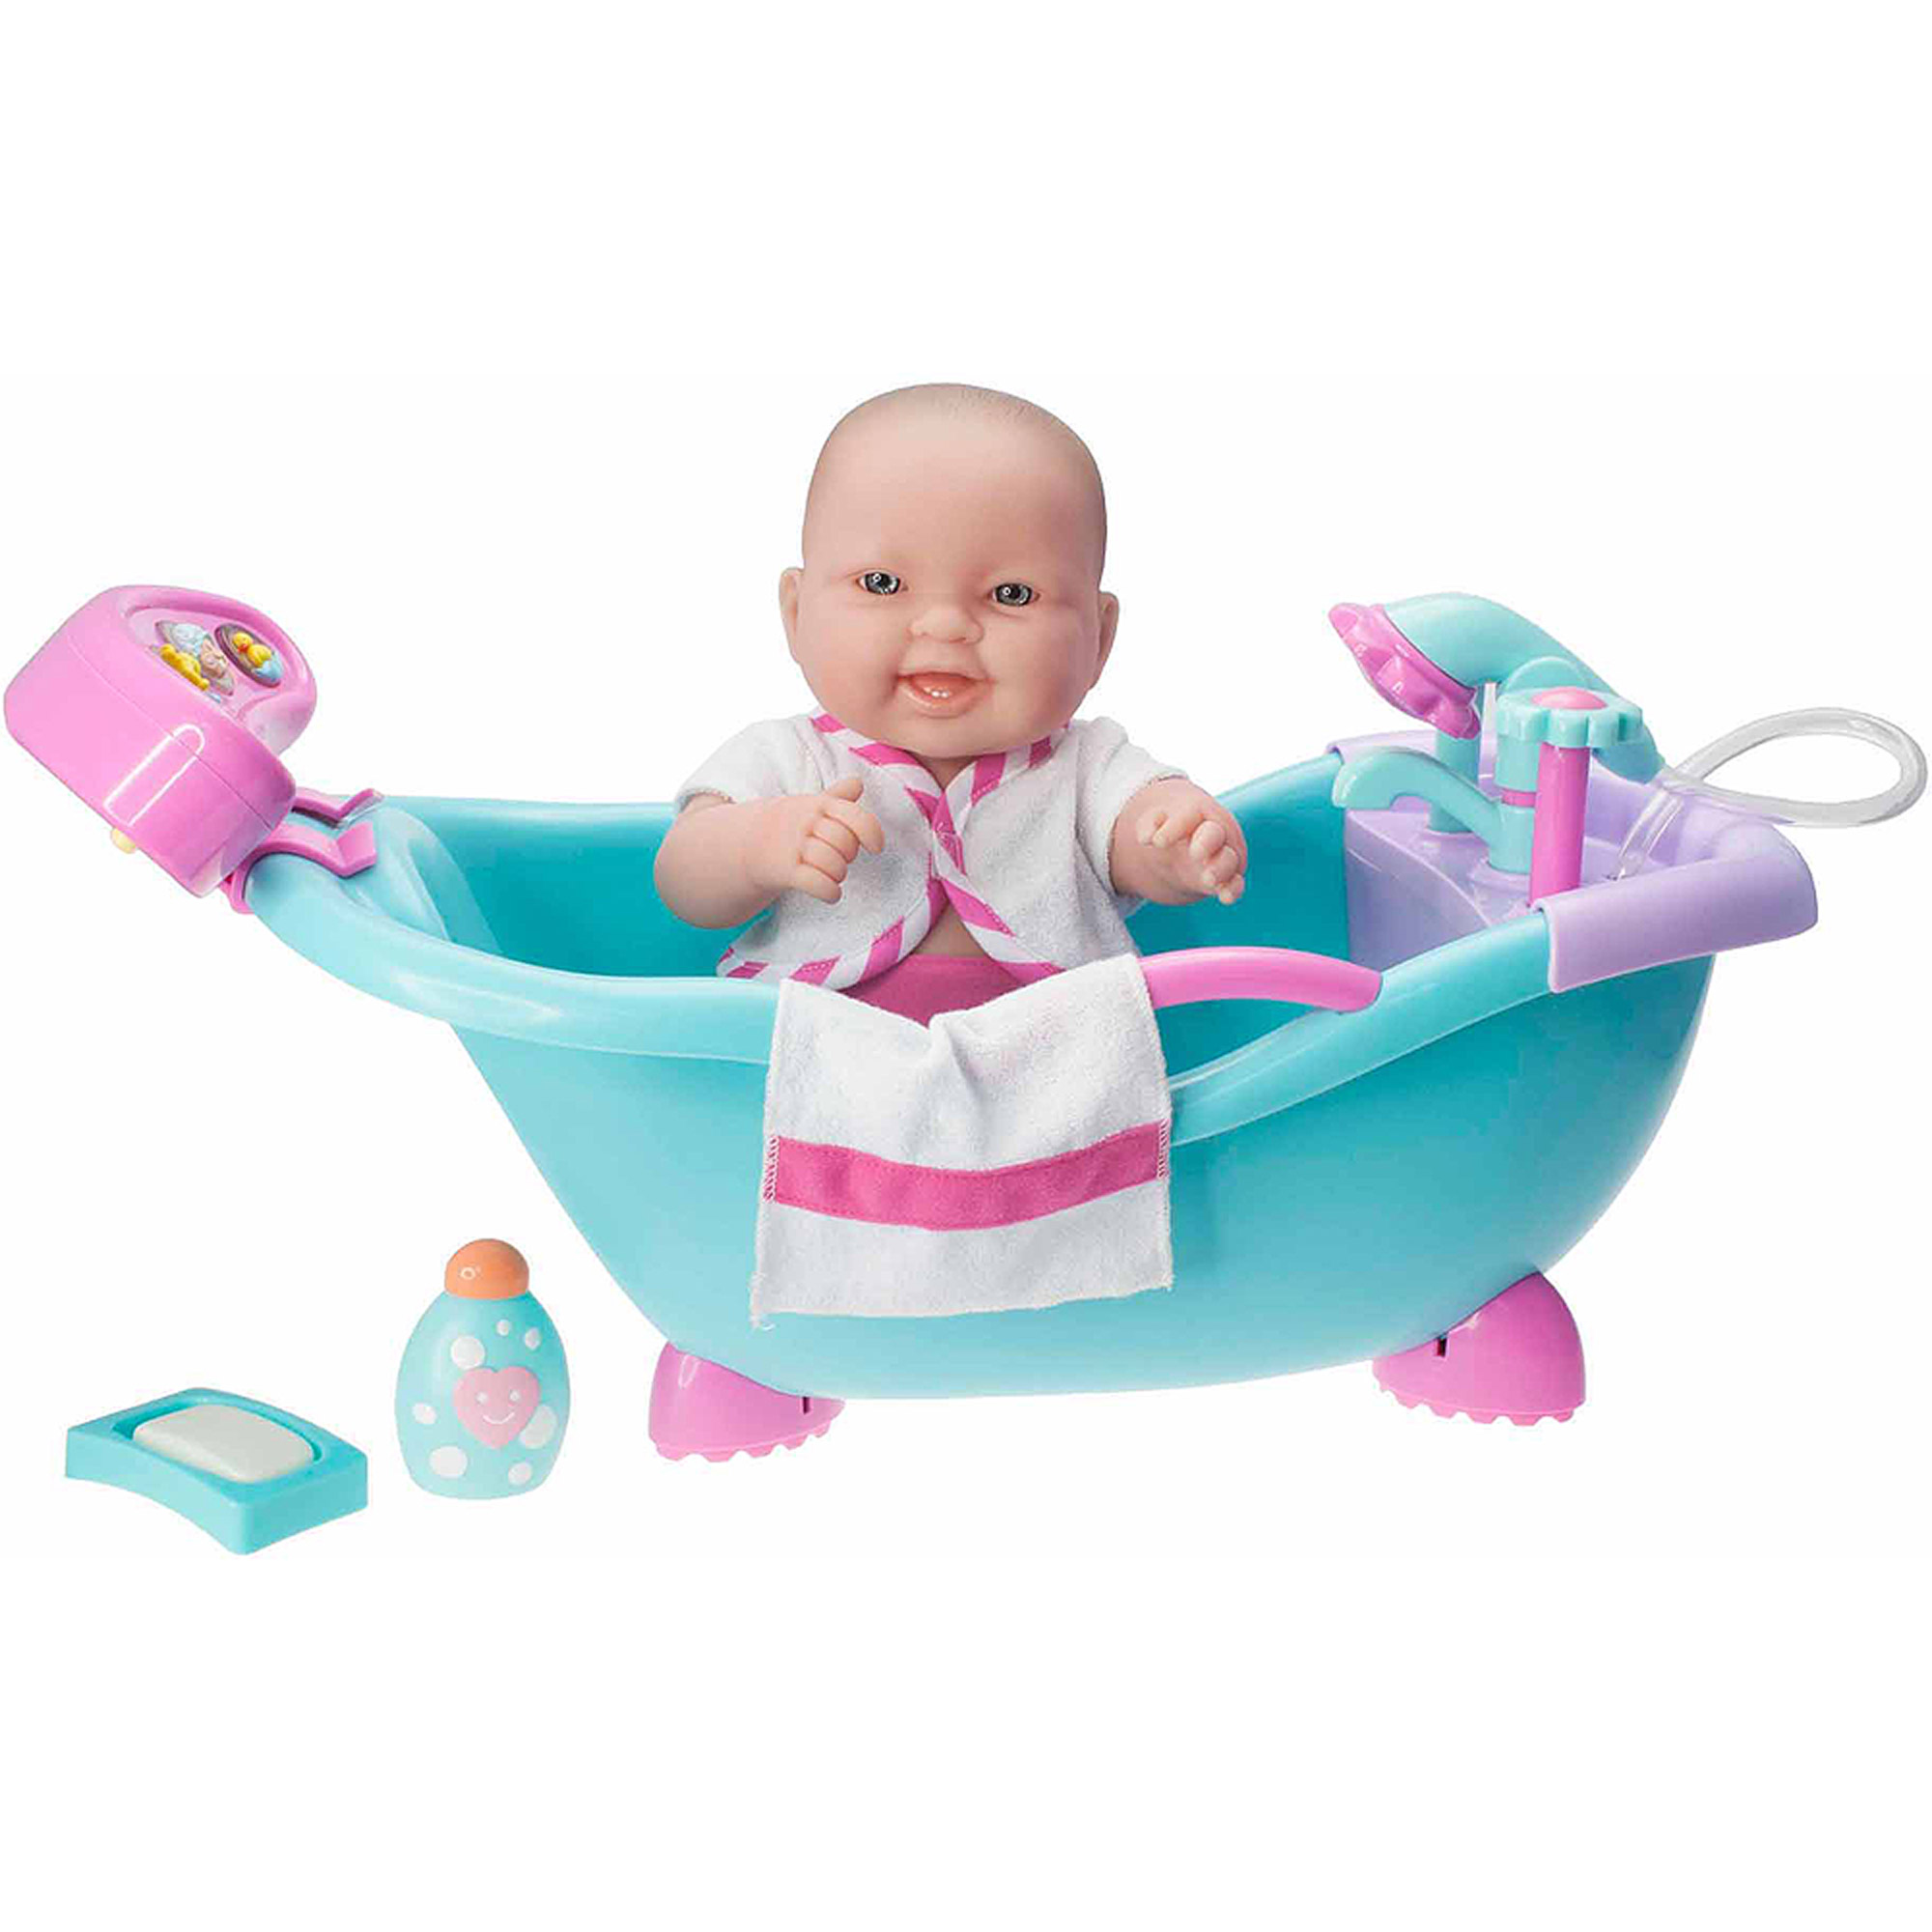 "Lots to Love Babies Electronic Sounds and Working Bath with 14"" All-Vinyl Doll and Accessories by JC TOYS"